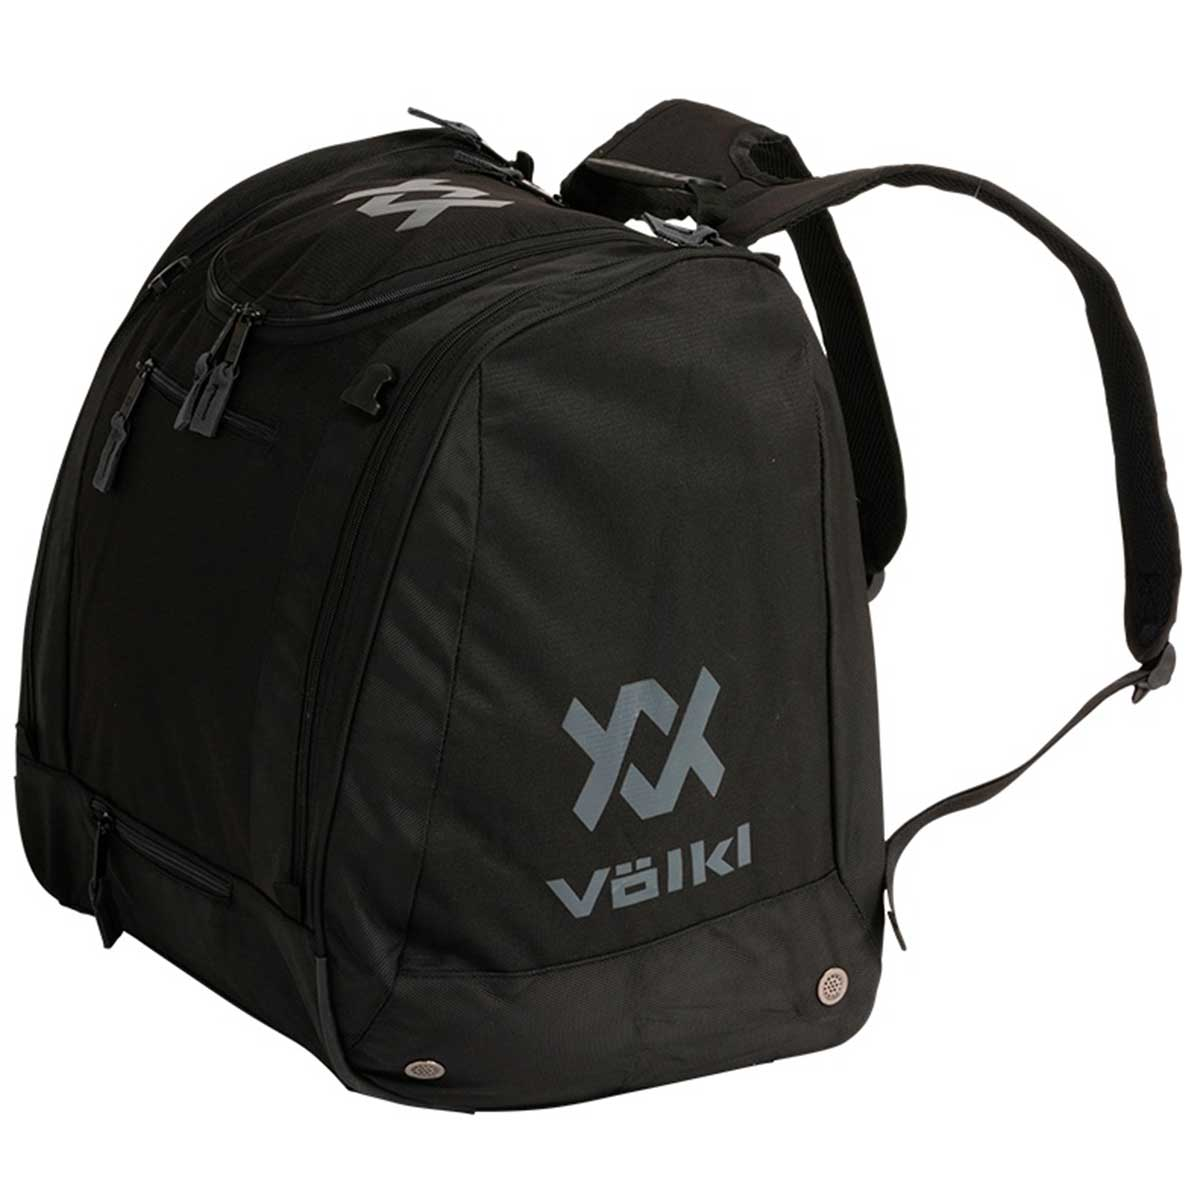 Volkl Deluxe Boot Bag in black